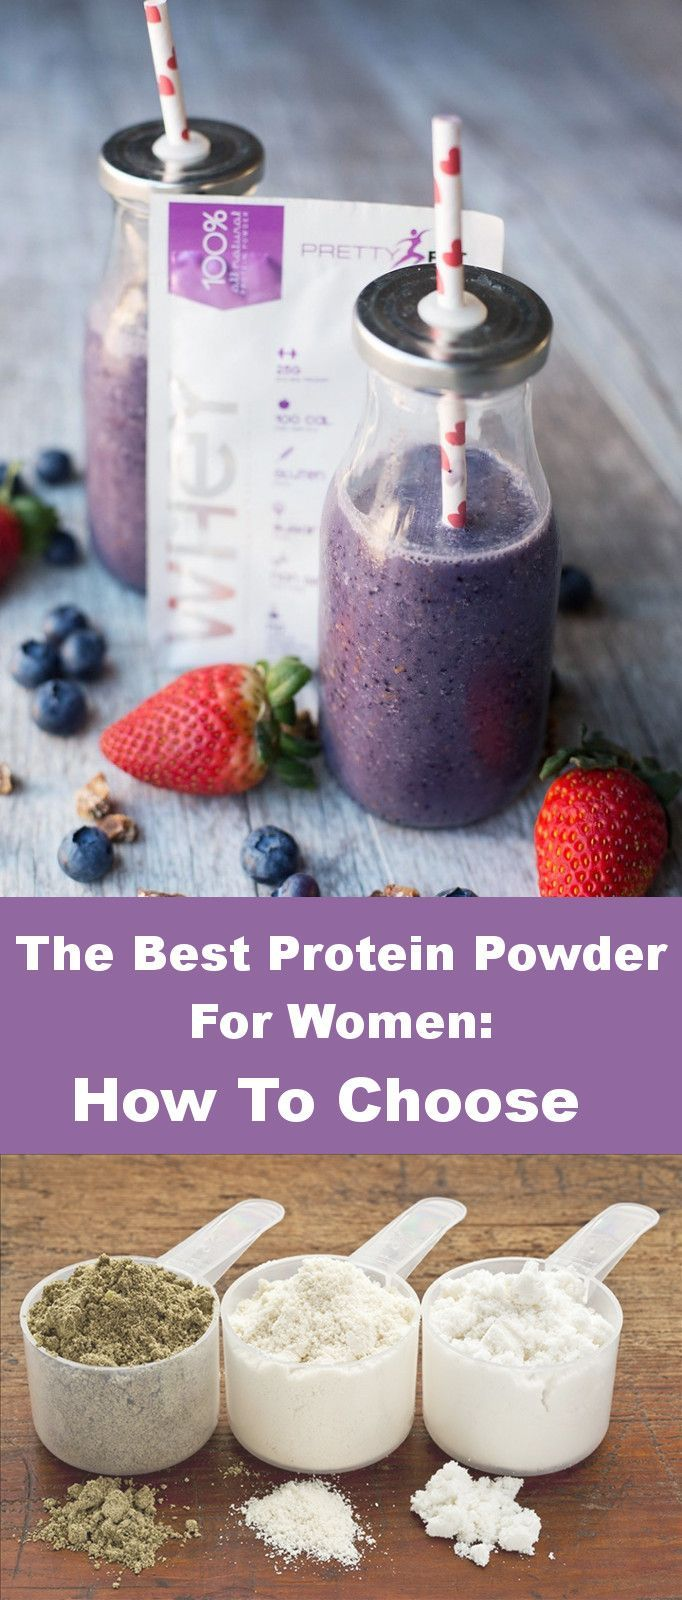 Are you wasting your money on the wrong type of protein powder? http://blog.imprettyfit.com/supplements/best-protein-powder-for-women/: